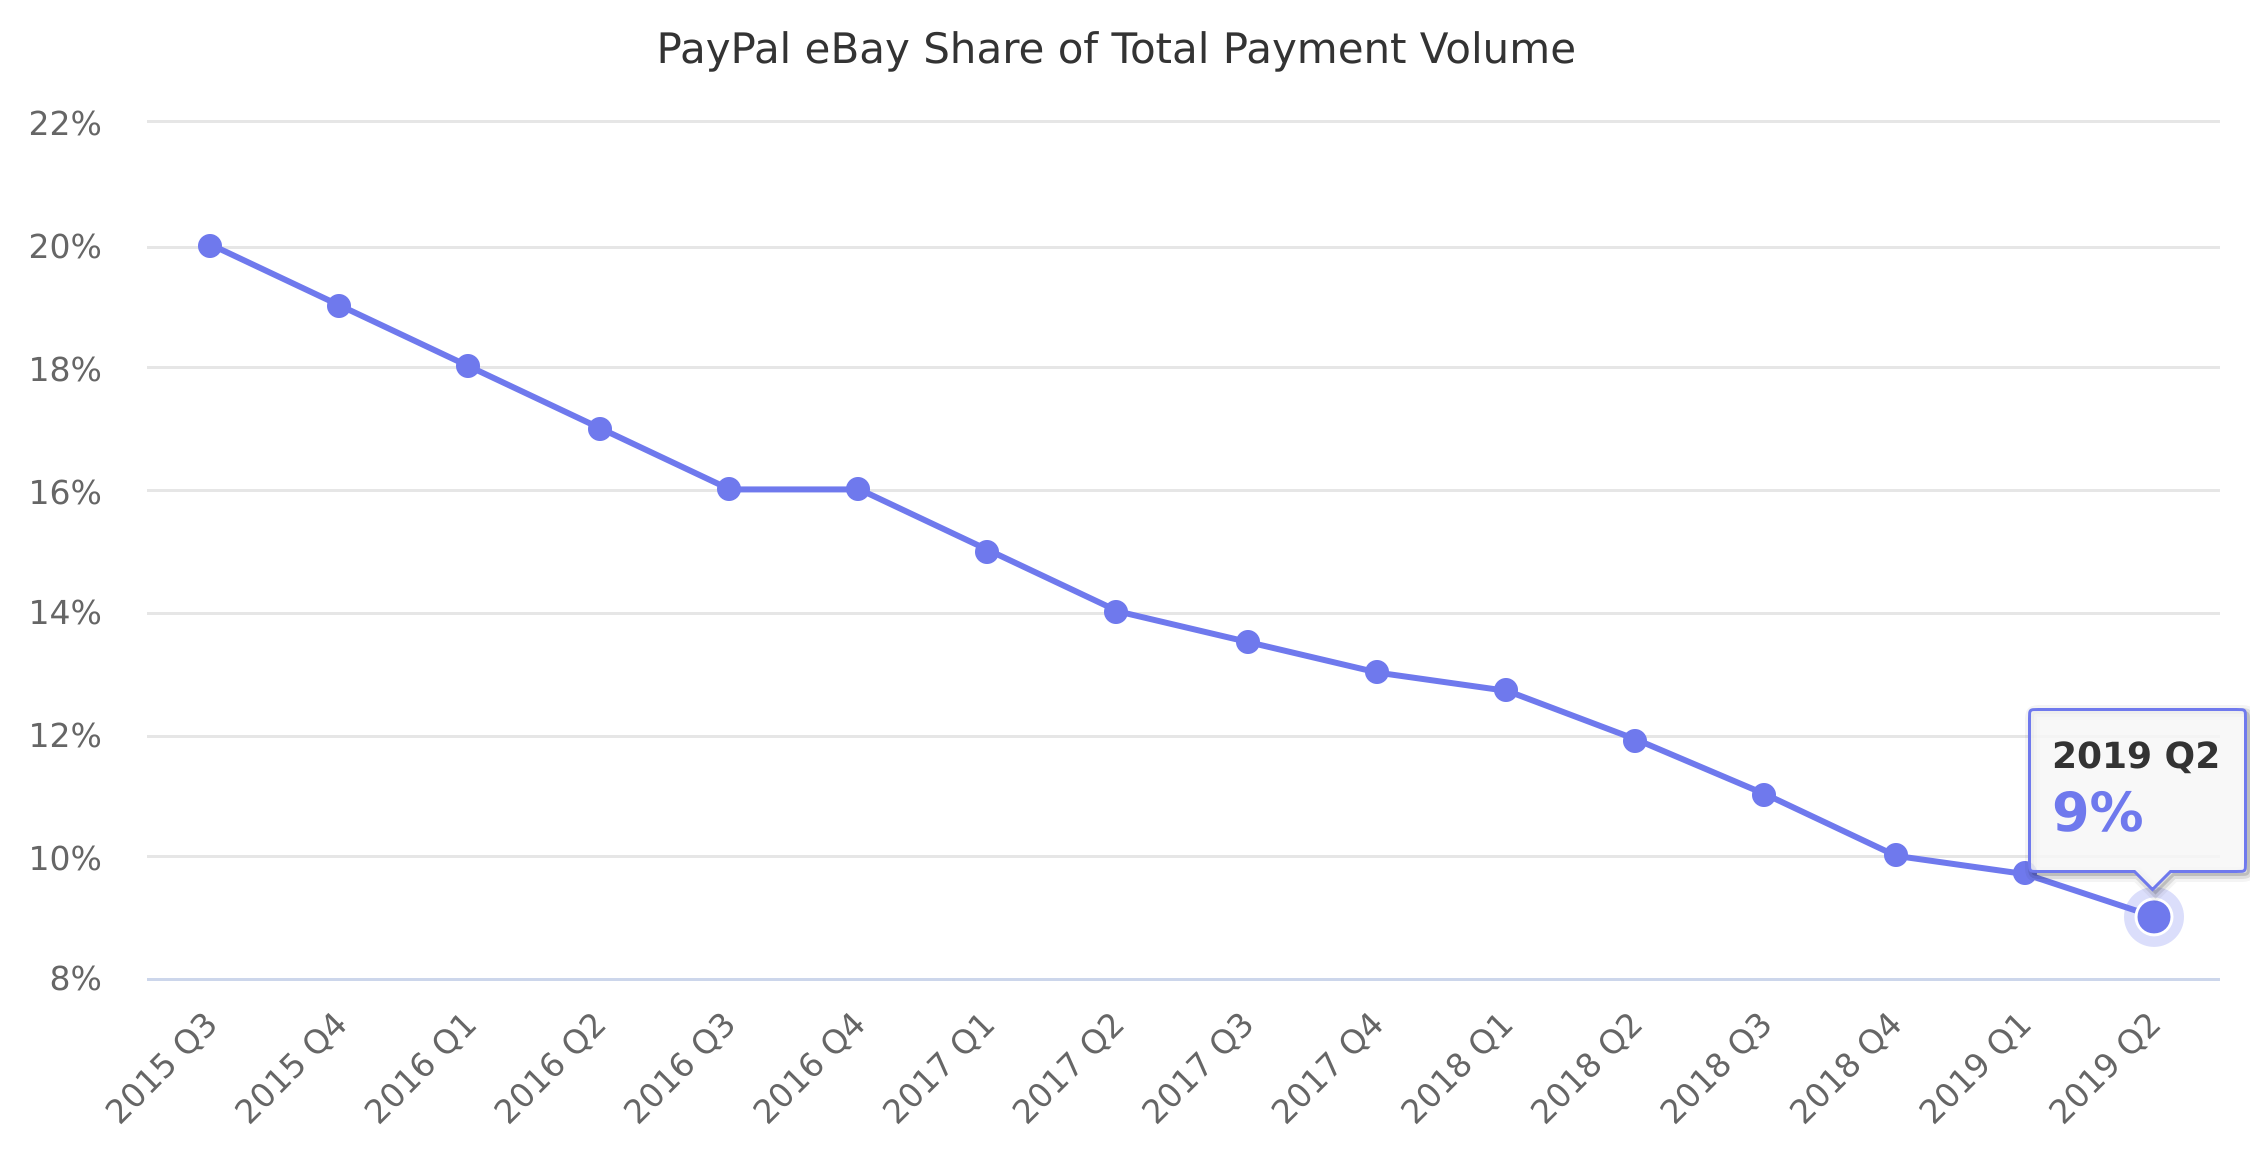 PayPal eBay Share of Total Payment Volume 2015-2019